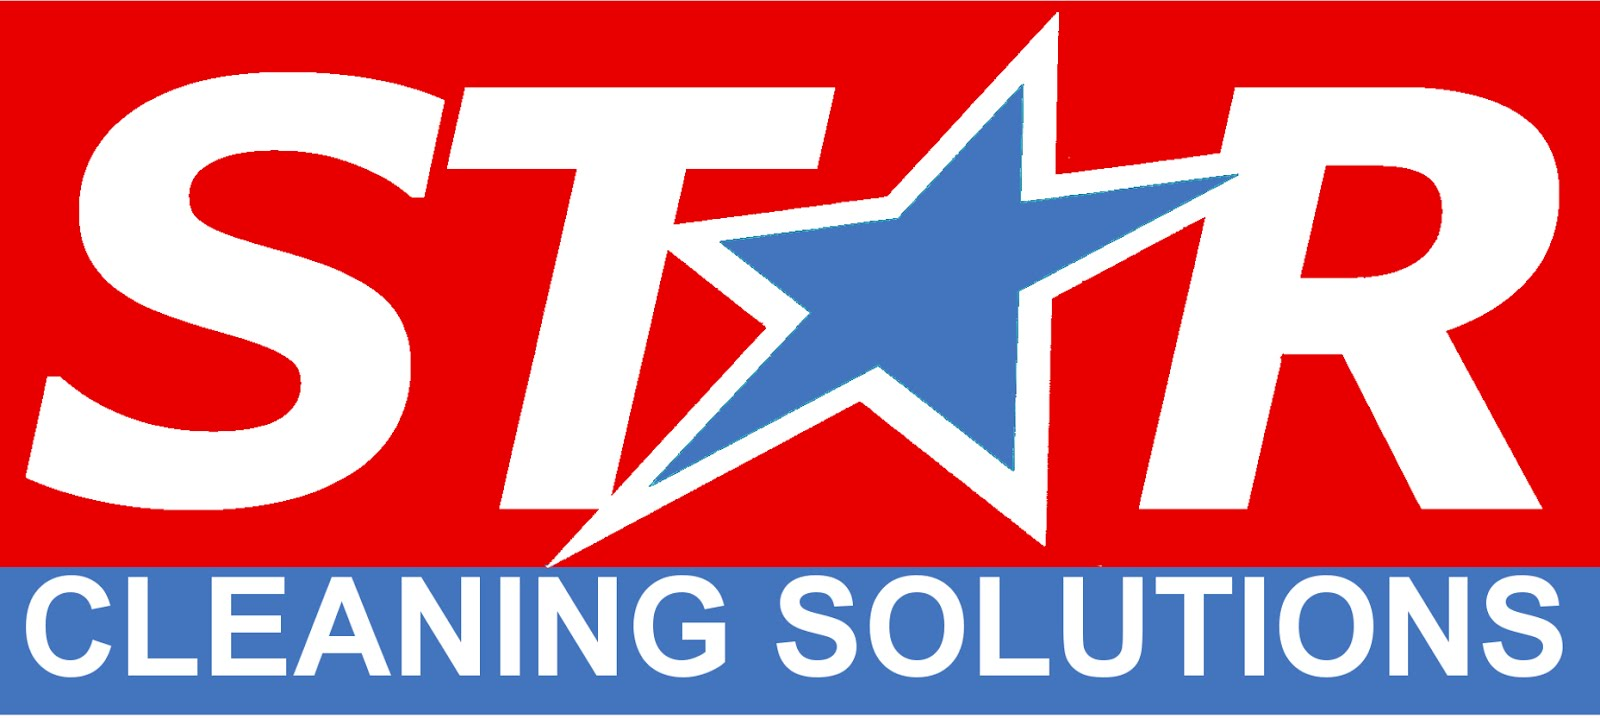 Star Cleaning Solutions